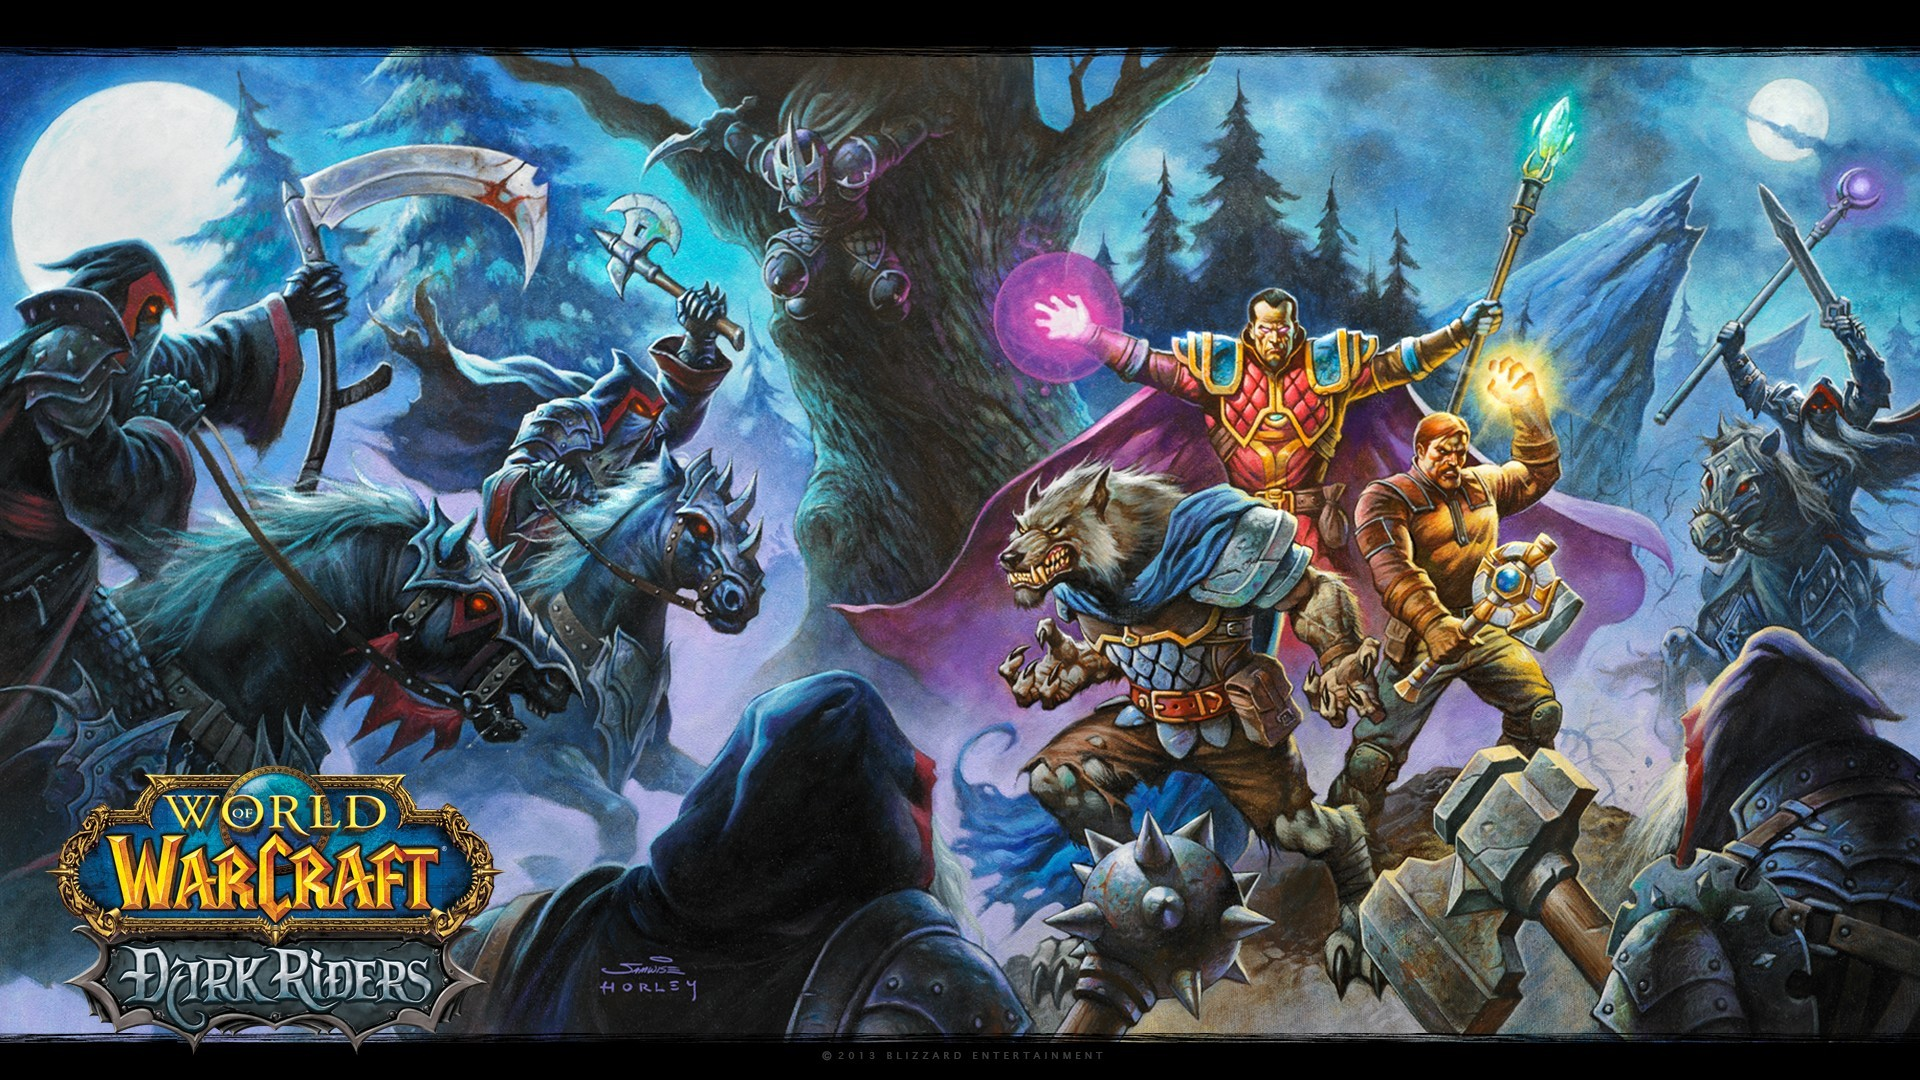 Video Games World Of Warcraft Blizzard Entertainment Widescreen